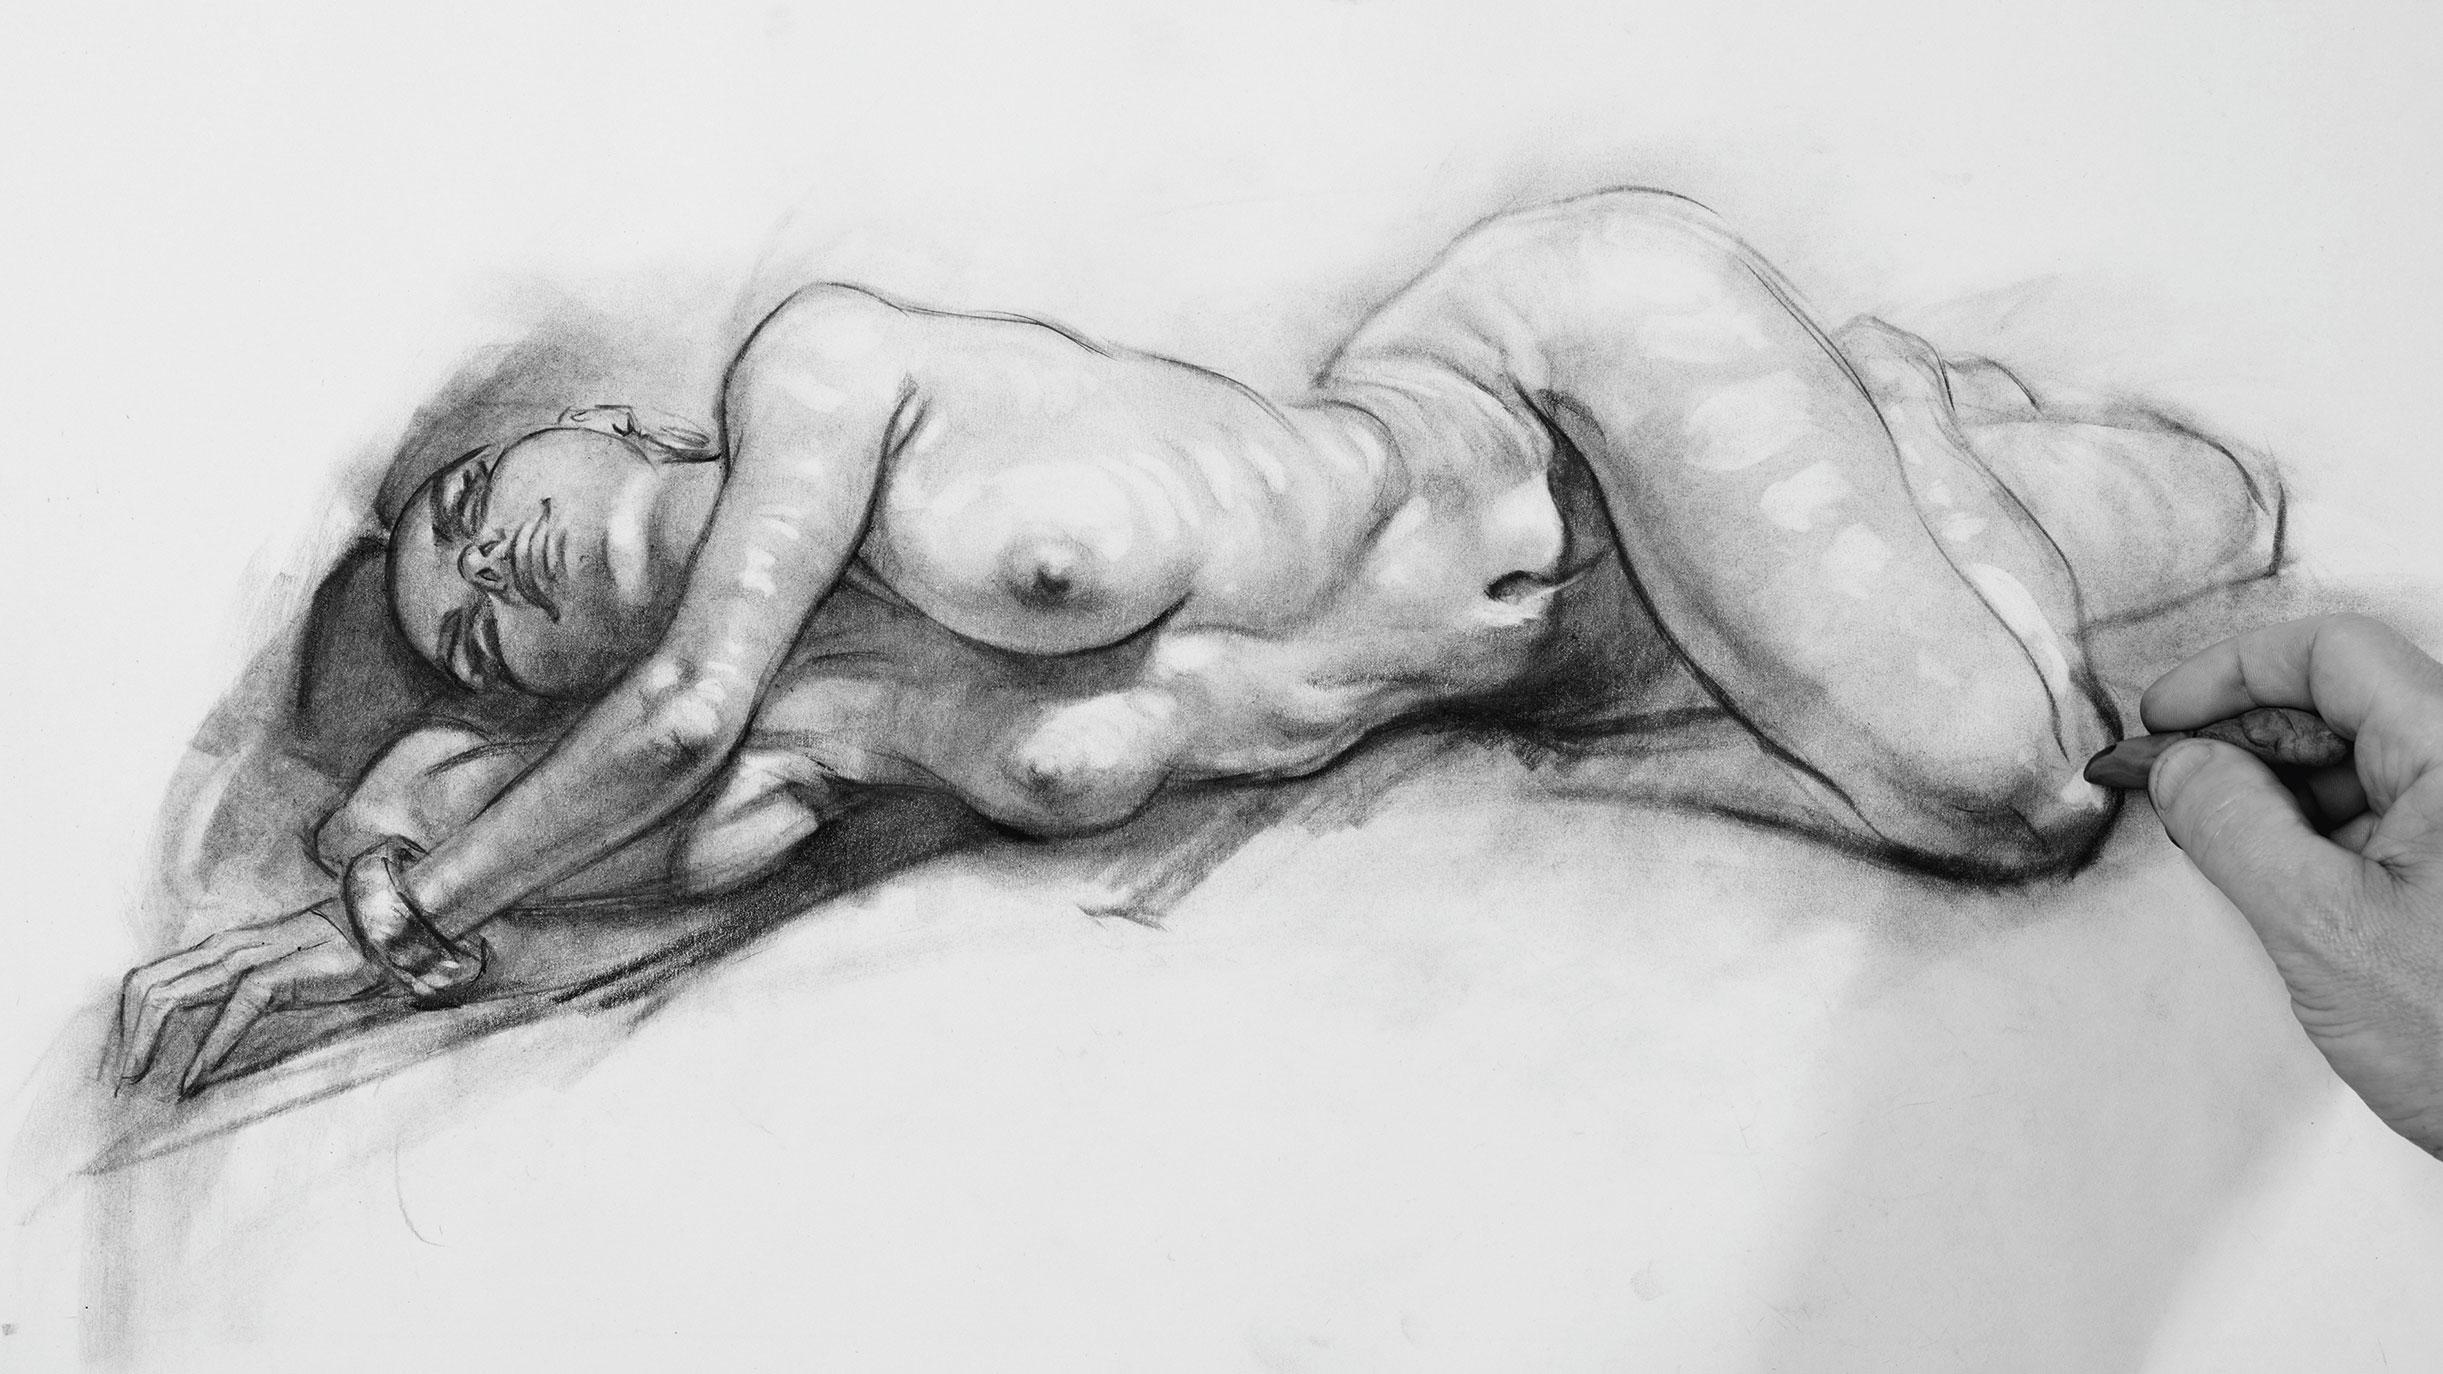 Charcoal figure with highlights added